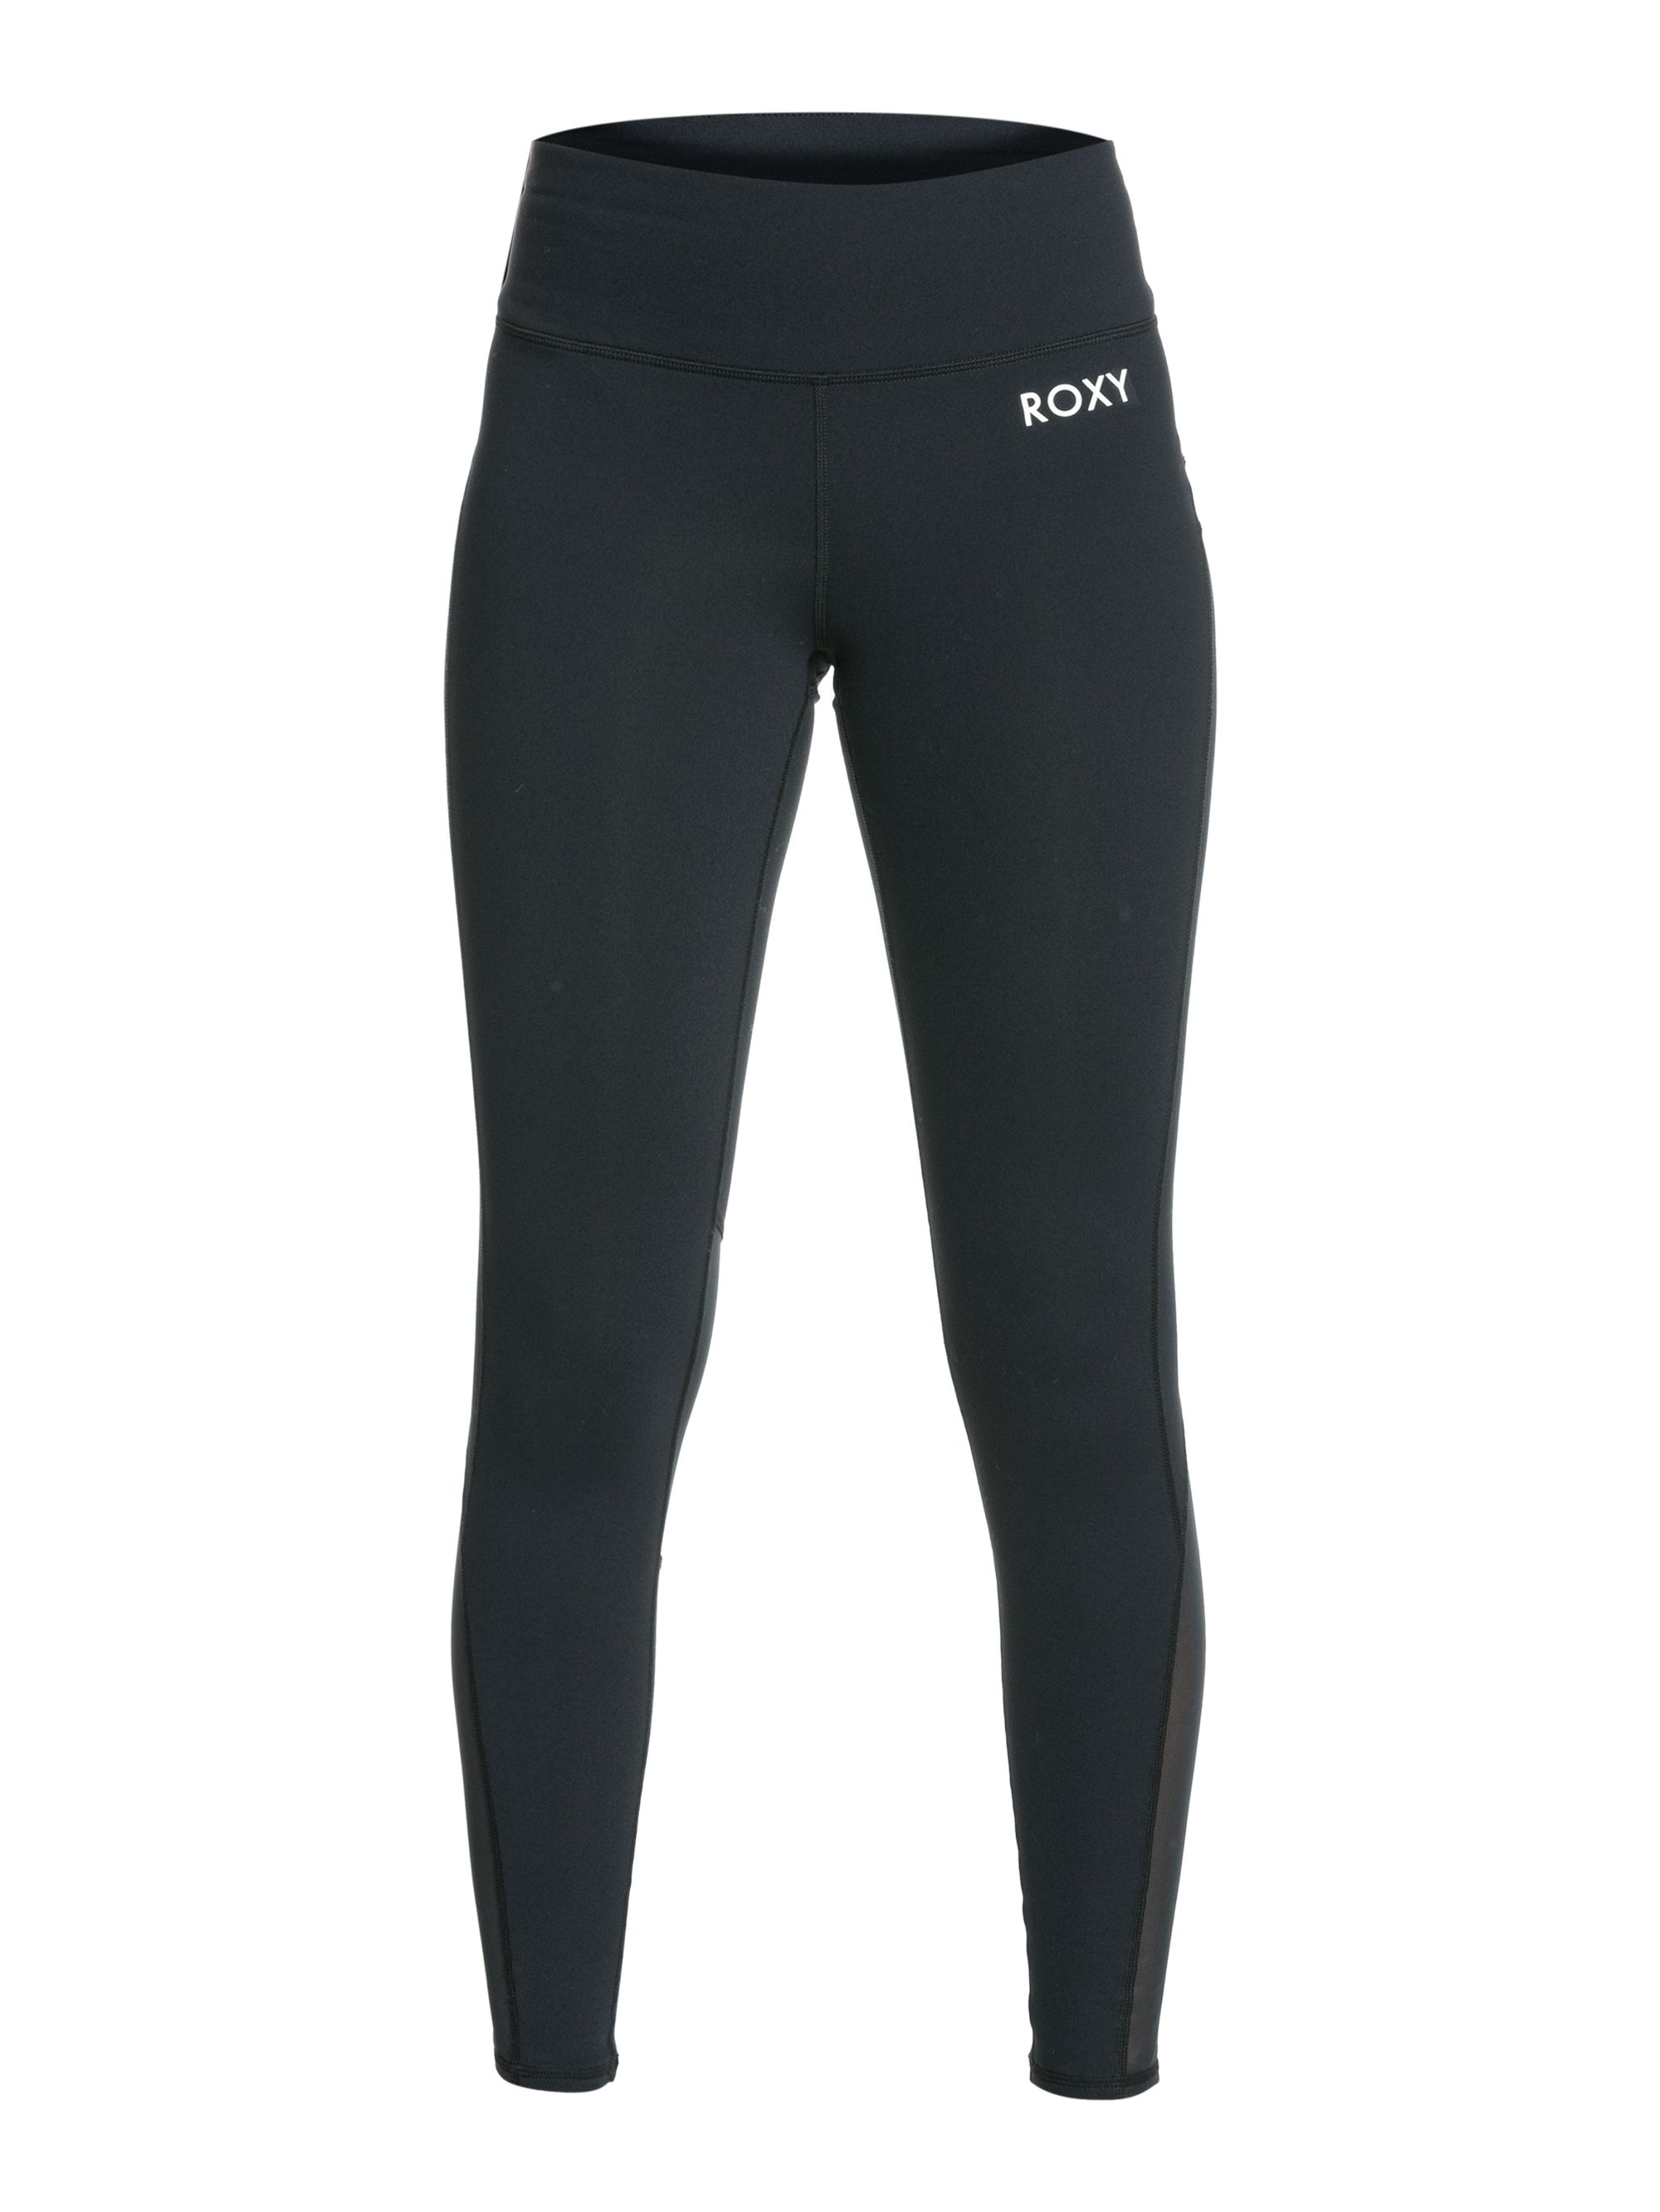 buy popular 8606e 4fae2 Fitness & Yoga Bekleidung: Alle Fitness Kleidung | Roxy